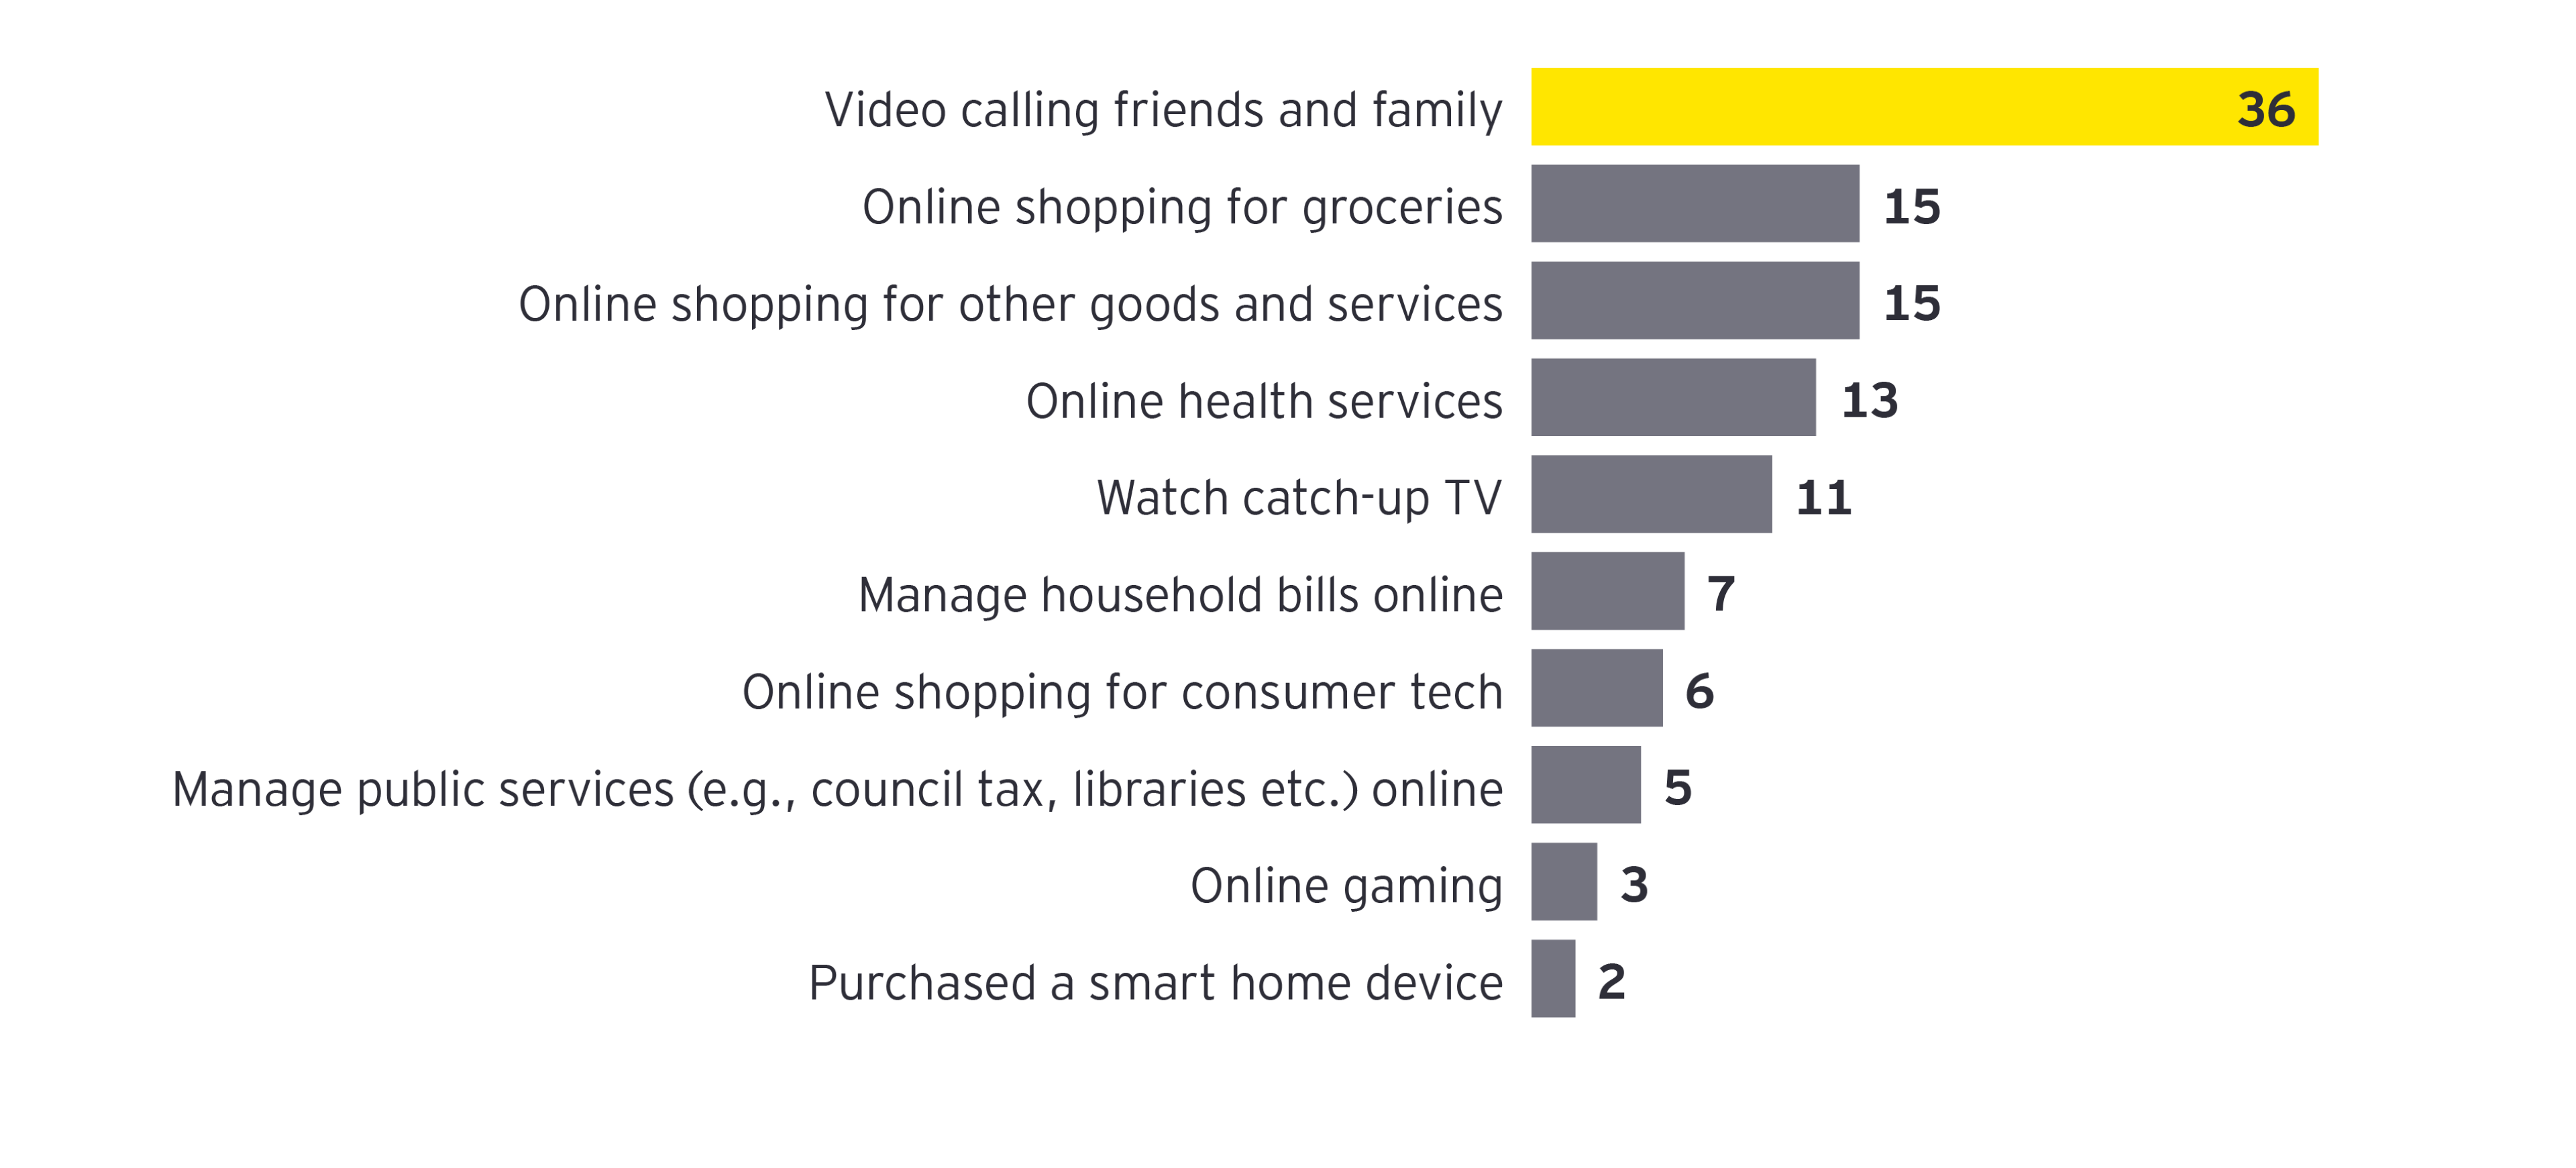 Households are trying digital activities for the first time